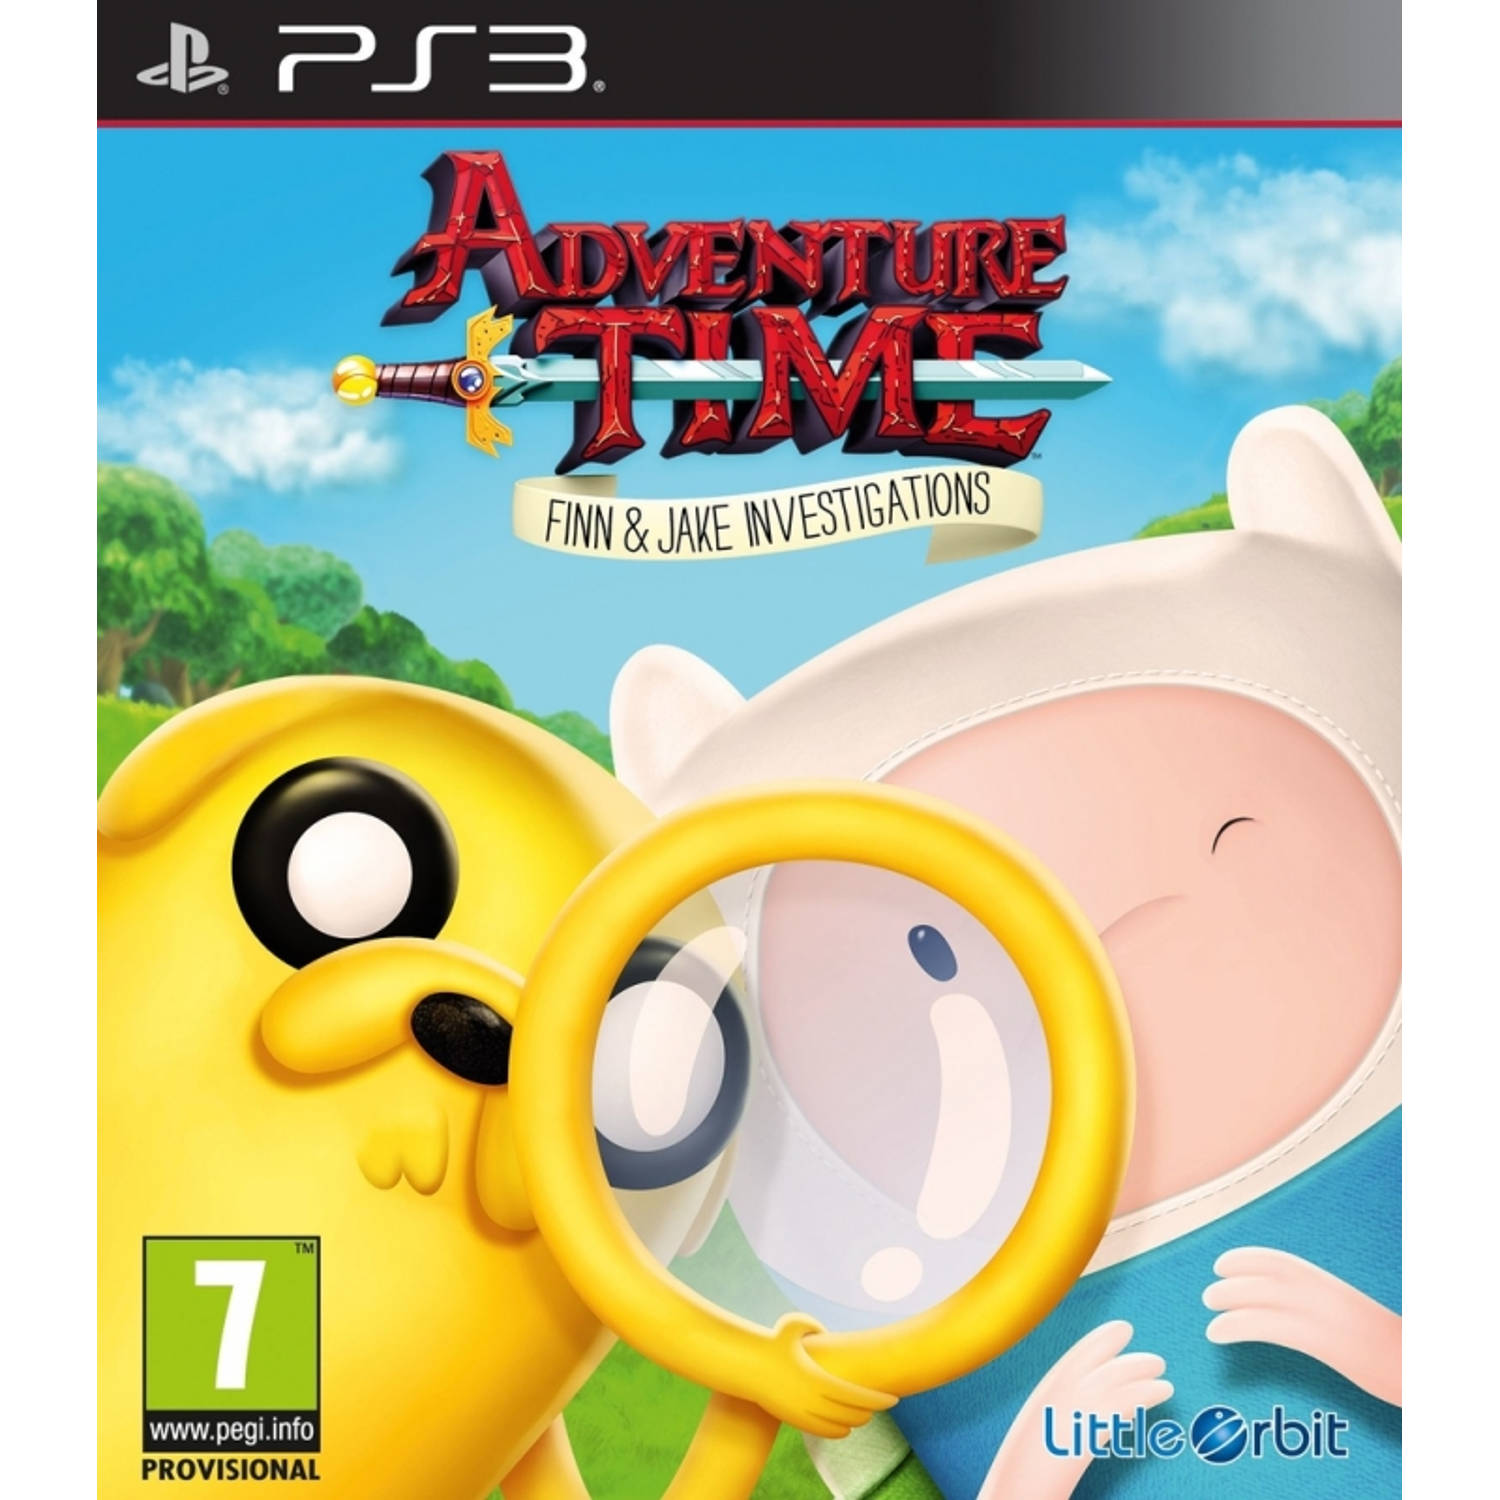 Adventure Time, Finn + Jake Investigations PS3